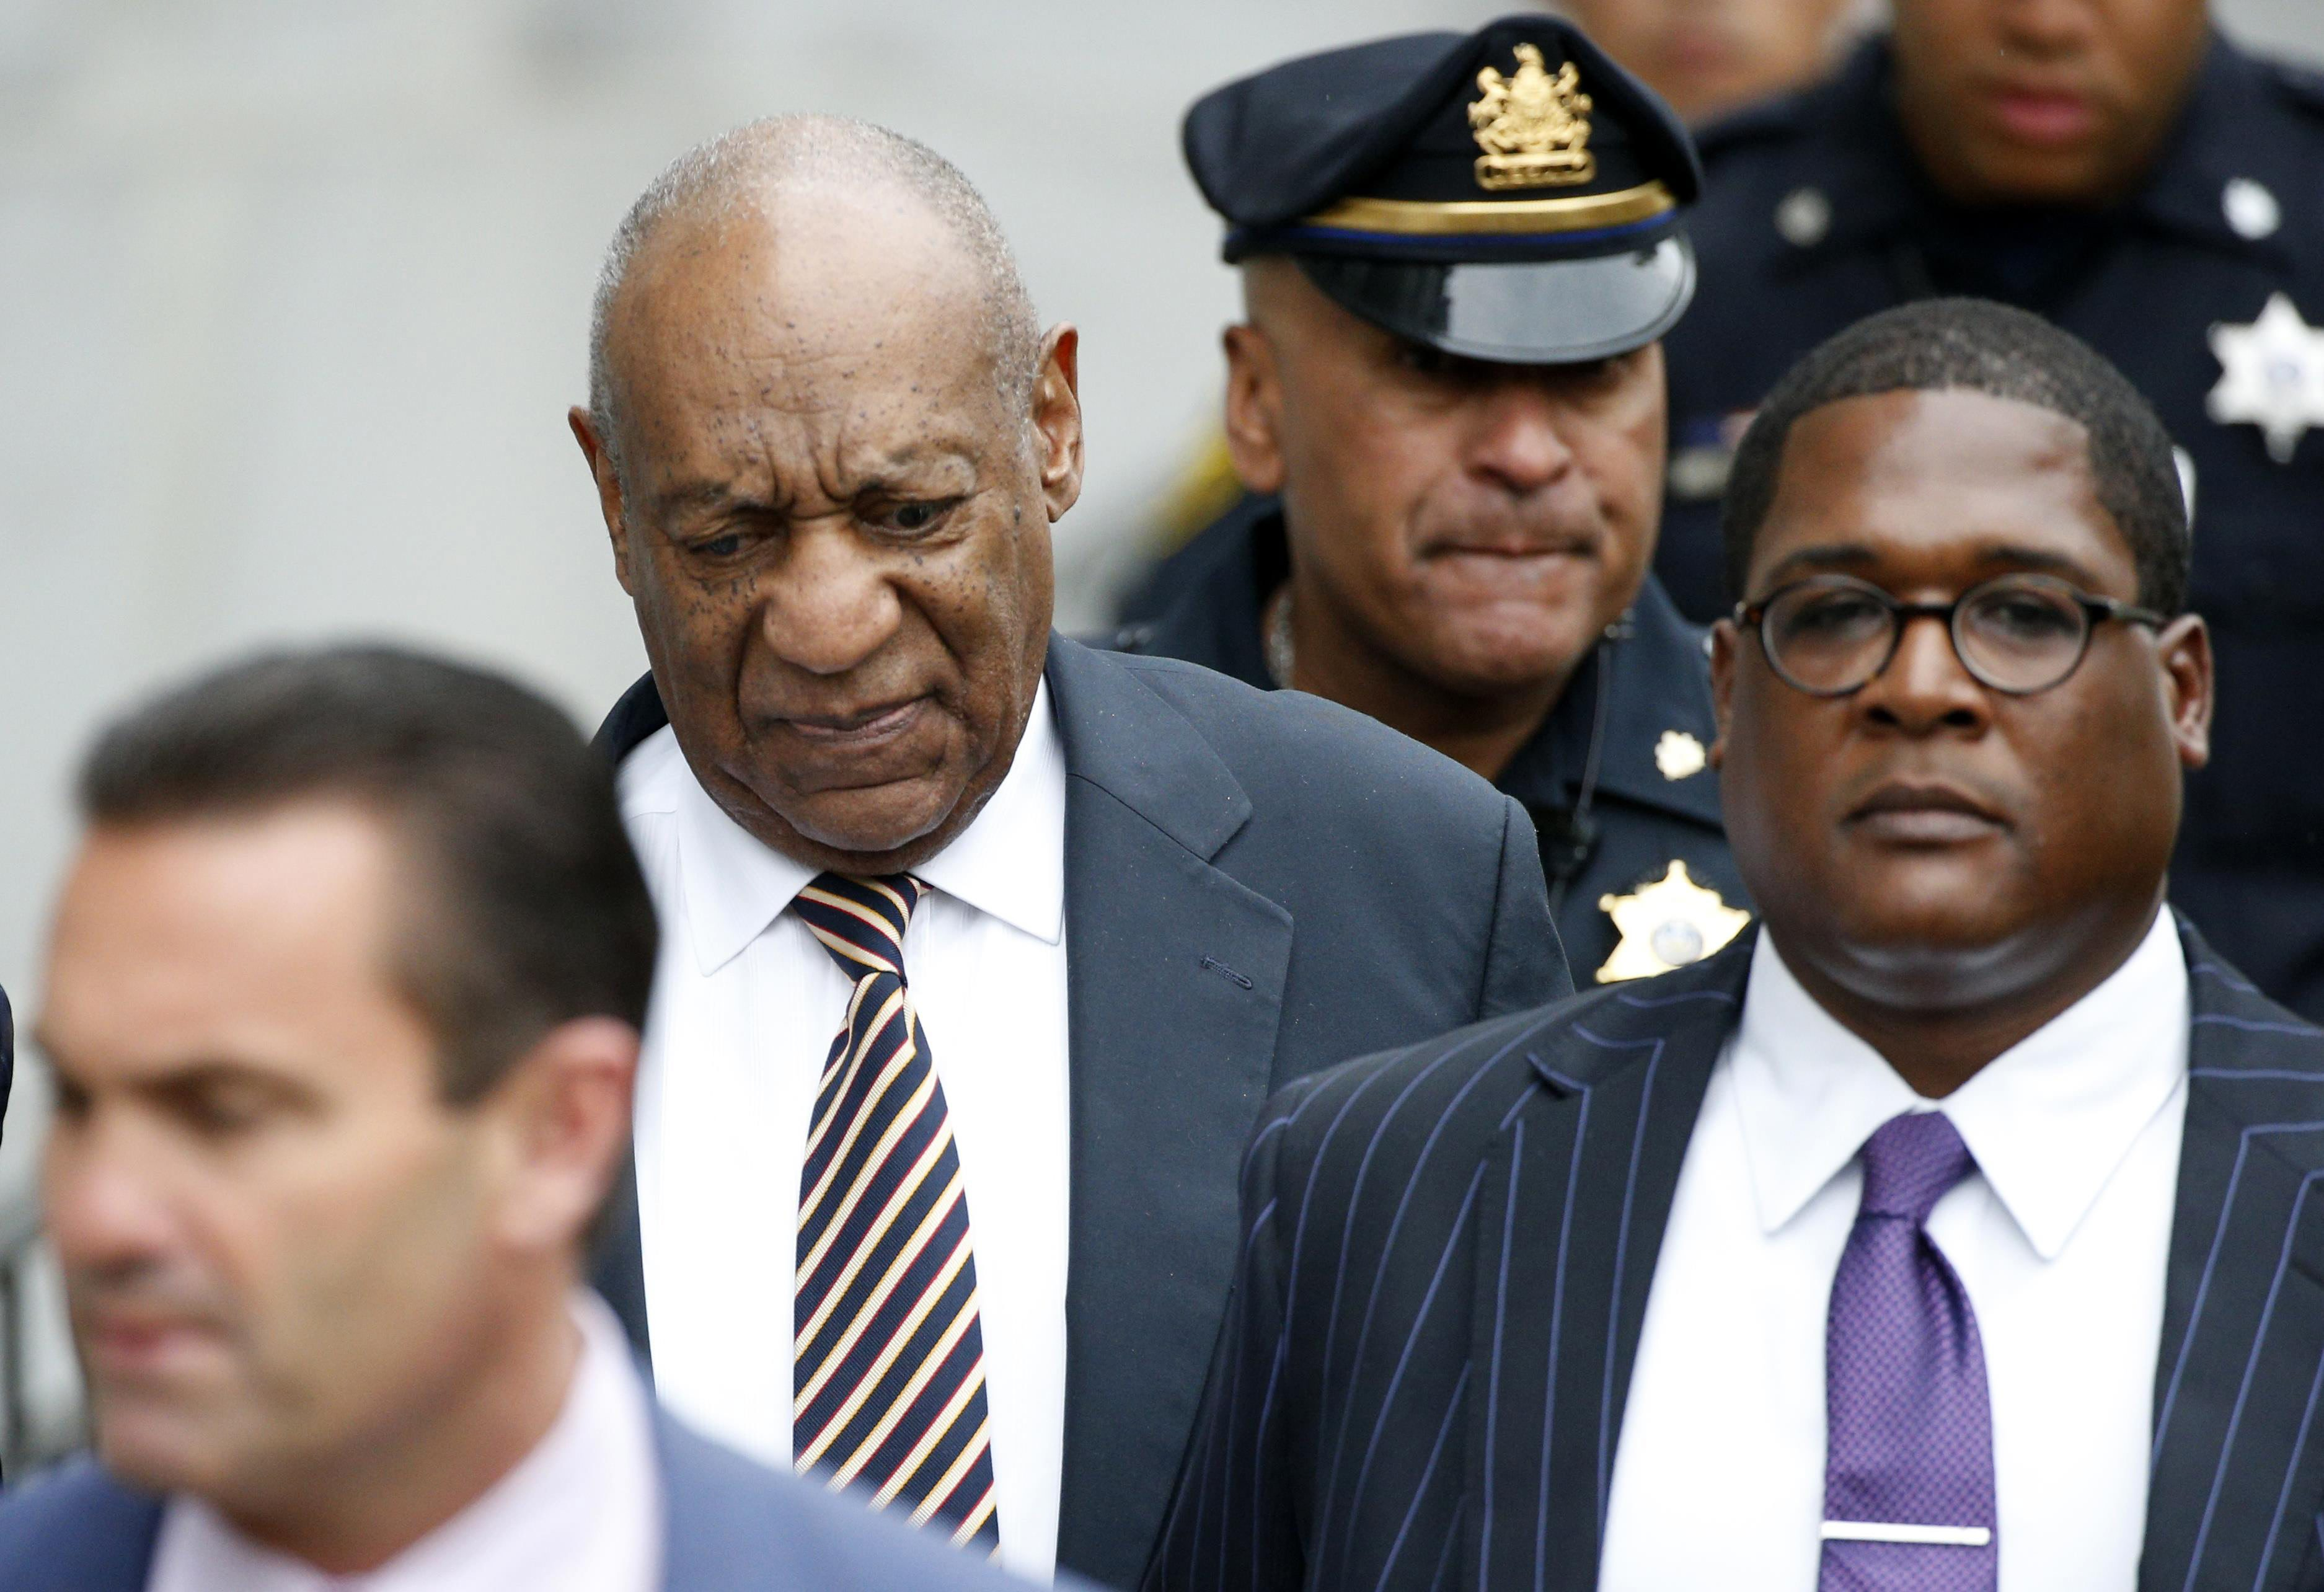 Actor and comedian Bill Cosby (2nd L) leaves with lawyer Fortunato N. Perri, Jr. (L) and spokesman Andrew Wyatt after the first day of his sexual assault trial at the Montgomery County Courthouse in Norristown, Pennsylvania, U.S. June 5, 2017. REUTERS/Brendan McDermid . TPX IMAGES OF THE DAY